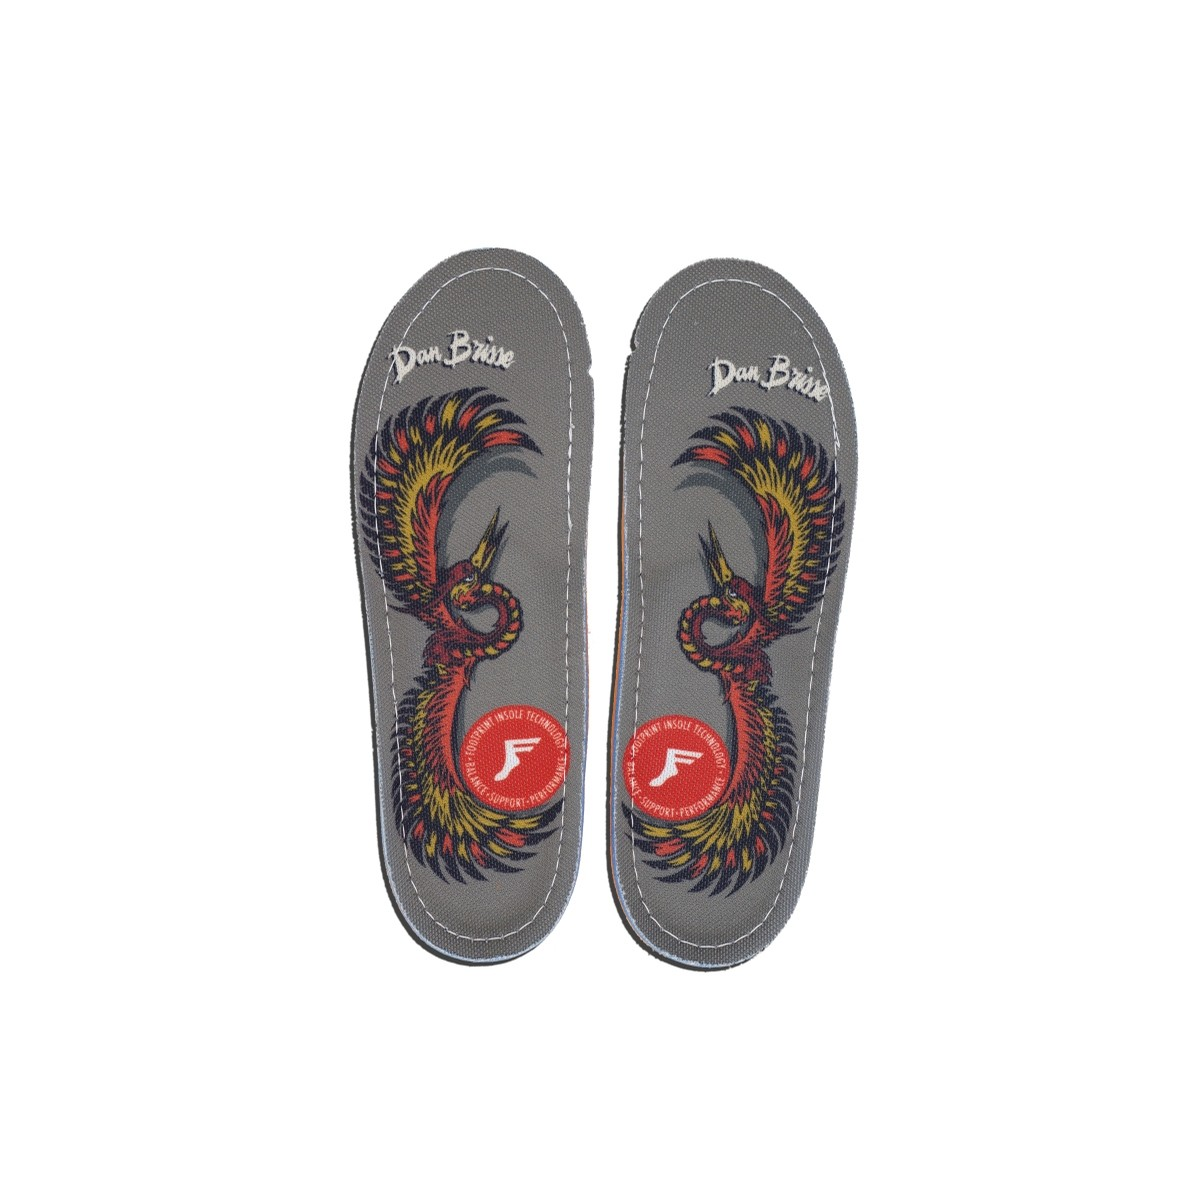 Dan Brisse Falcon Kingfoam Orthotic Insoles